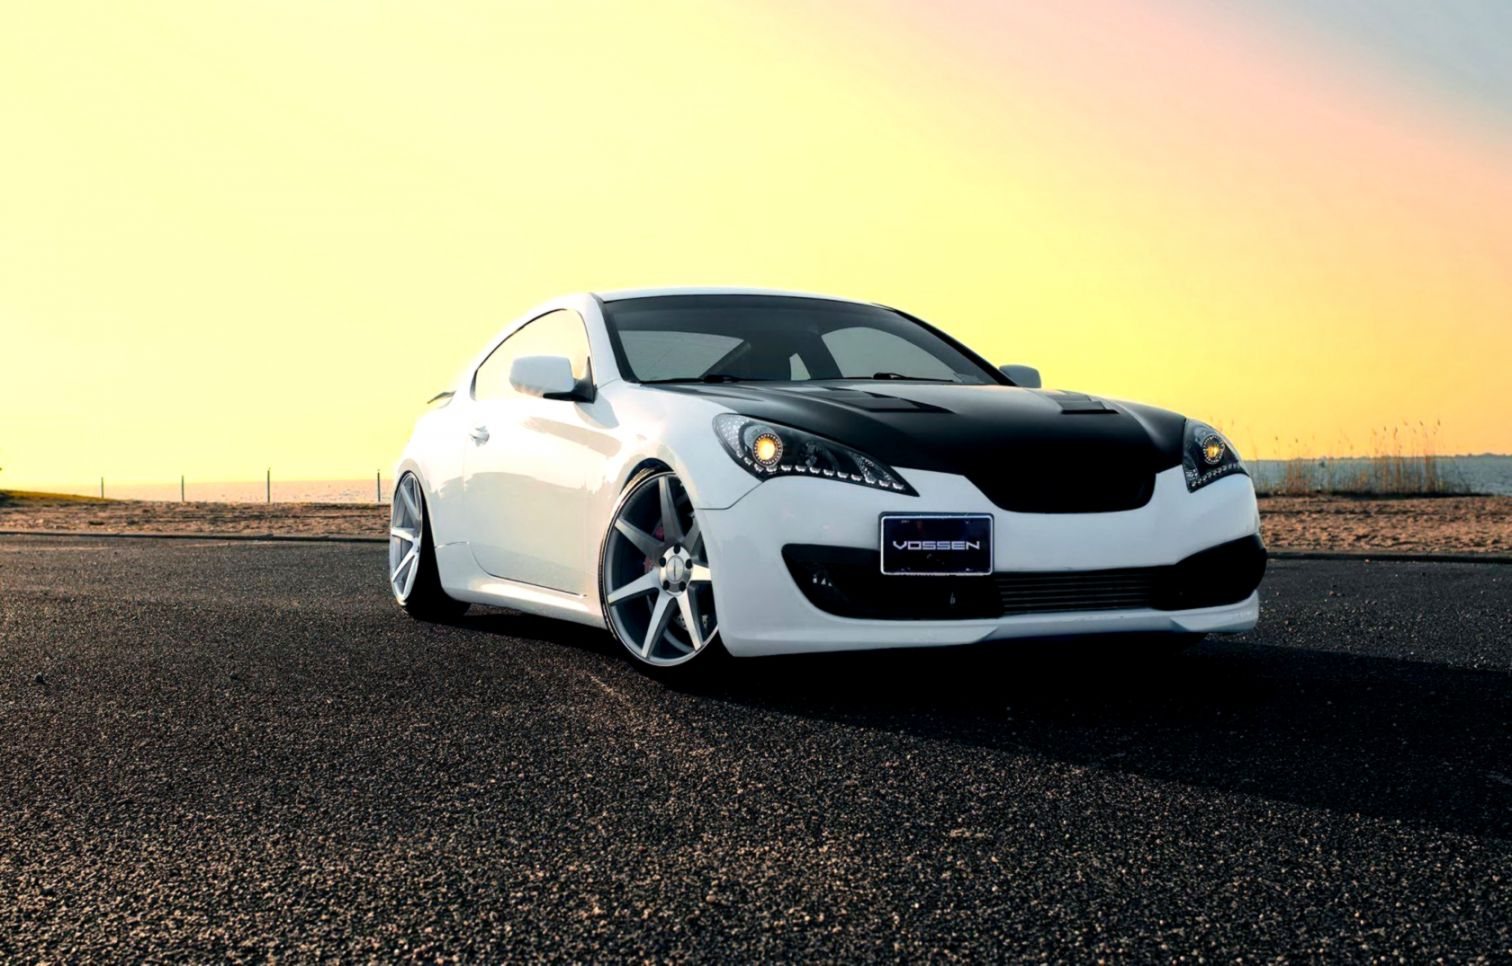 hight resolution of wallpapers bmw wallpapers cars wallpapers custom wallpapers tuned